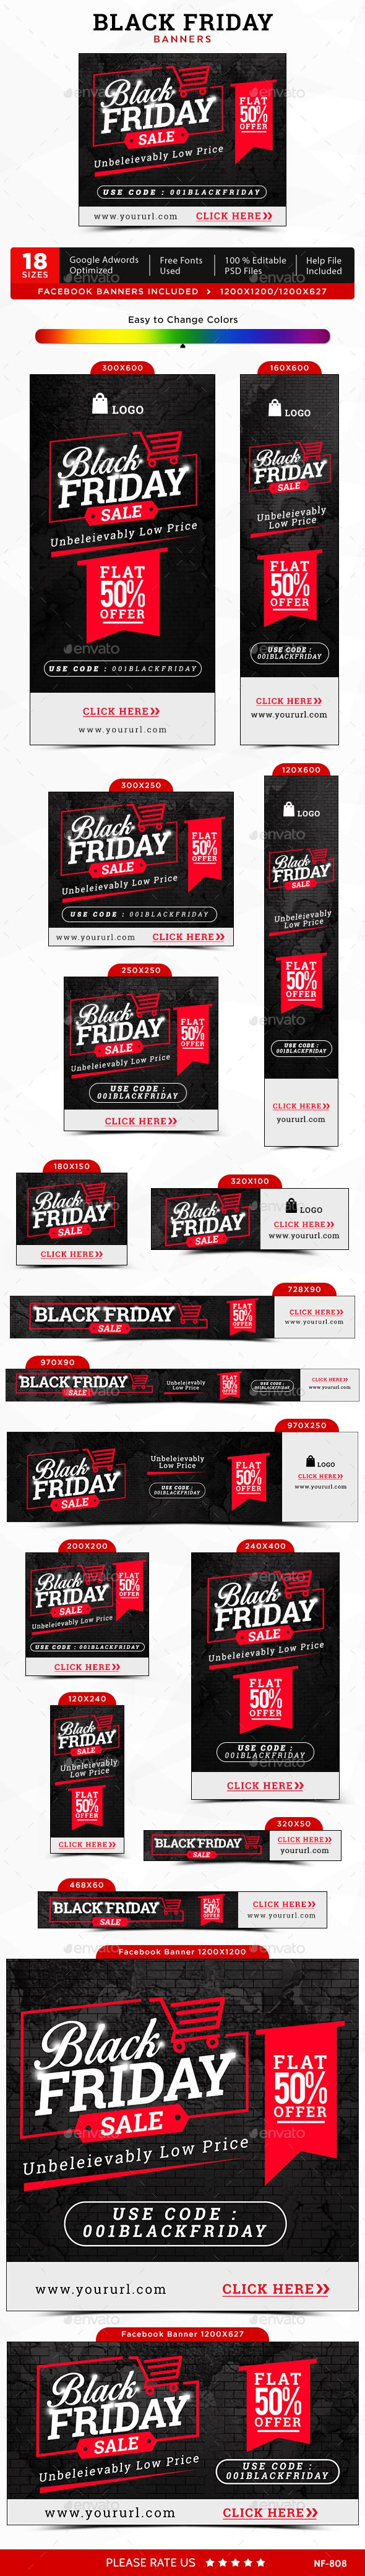 Black Friday Web Banners Template PSD #design Download: http://graphicriver.net/item/black-friday-banners/13686164?ref=ksioks